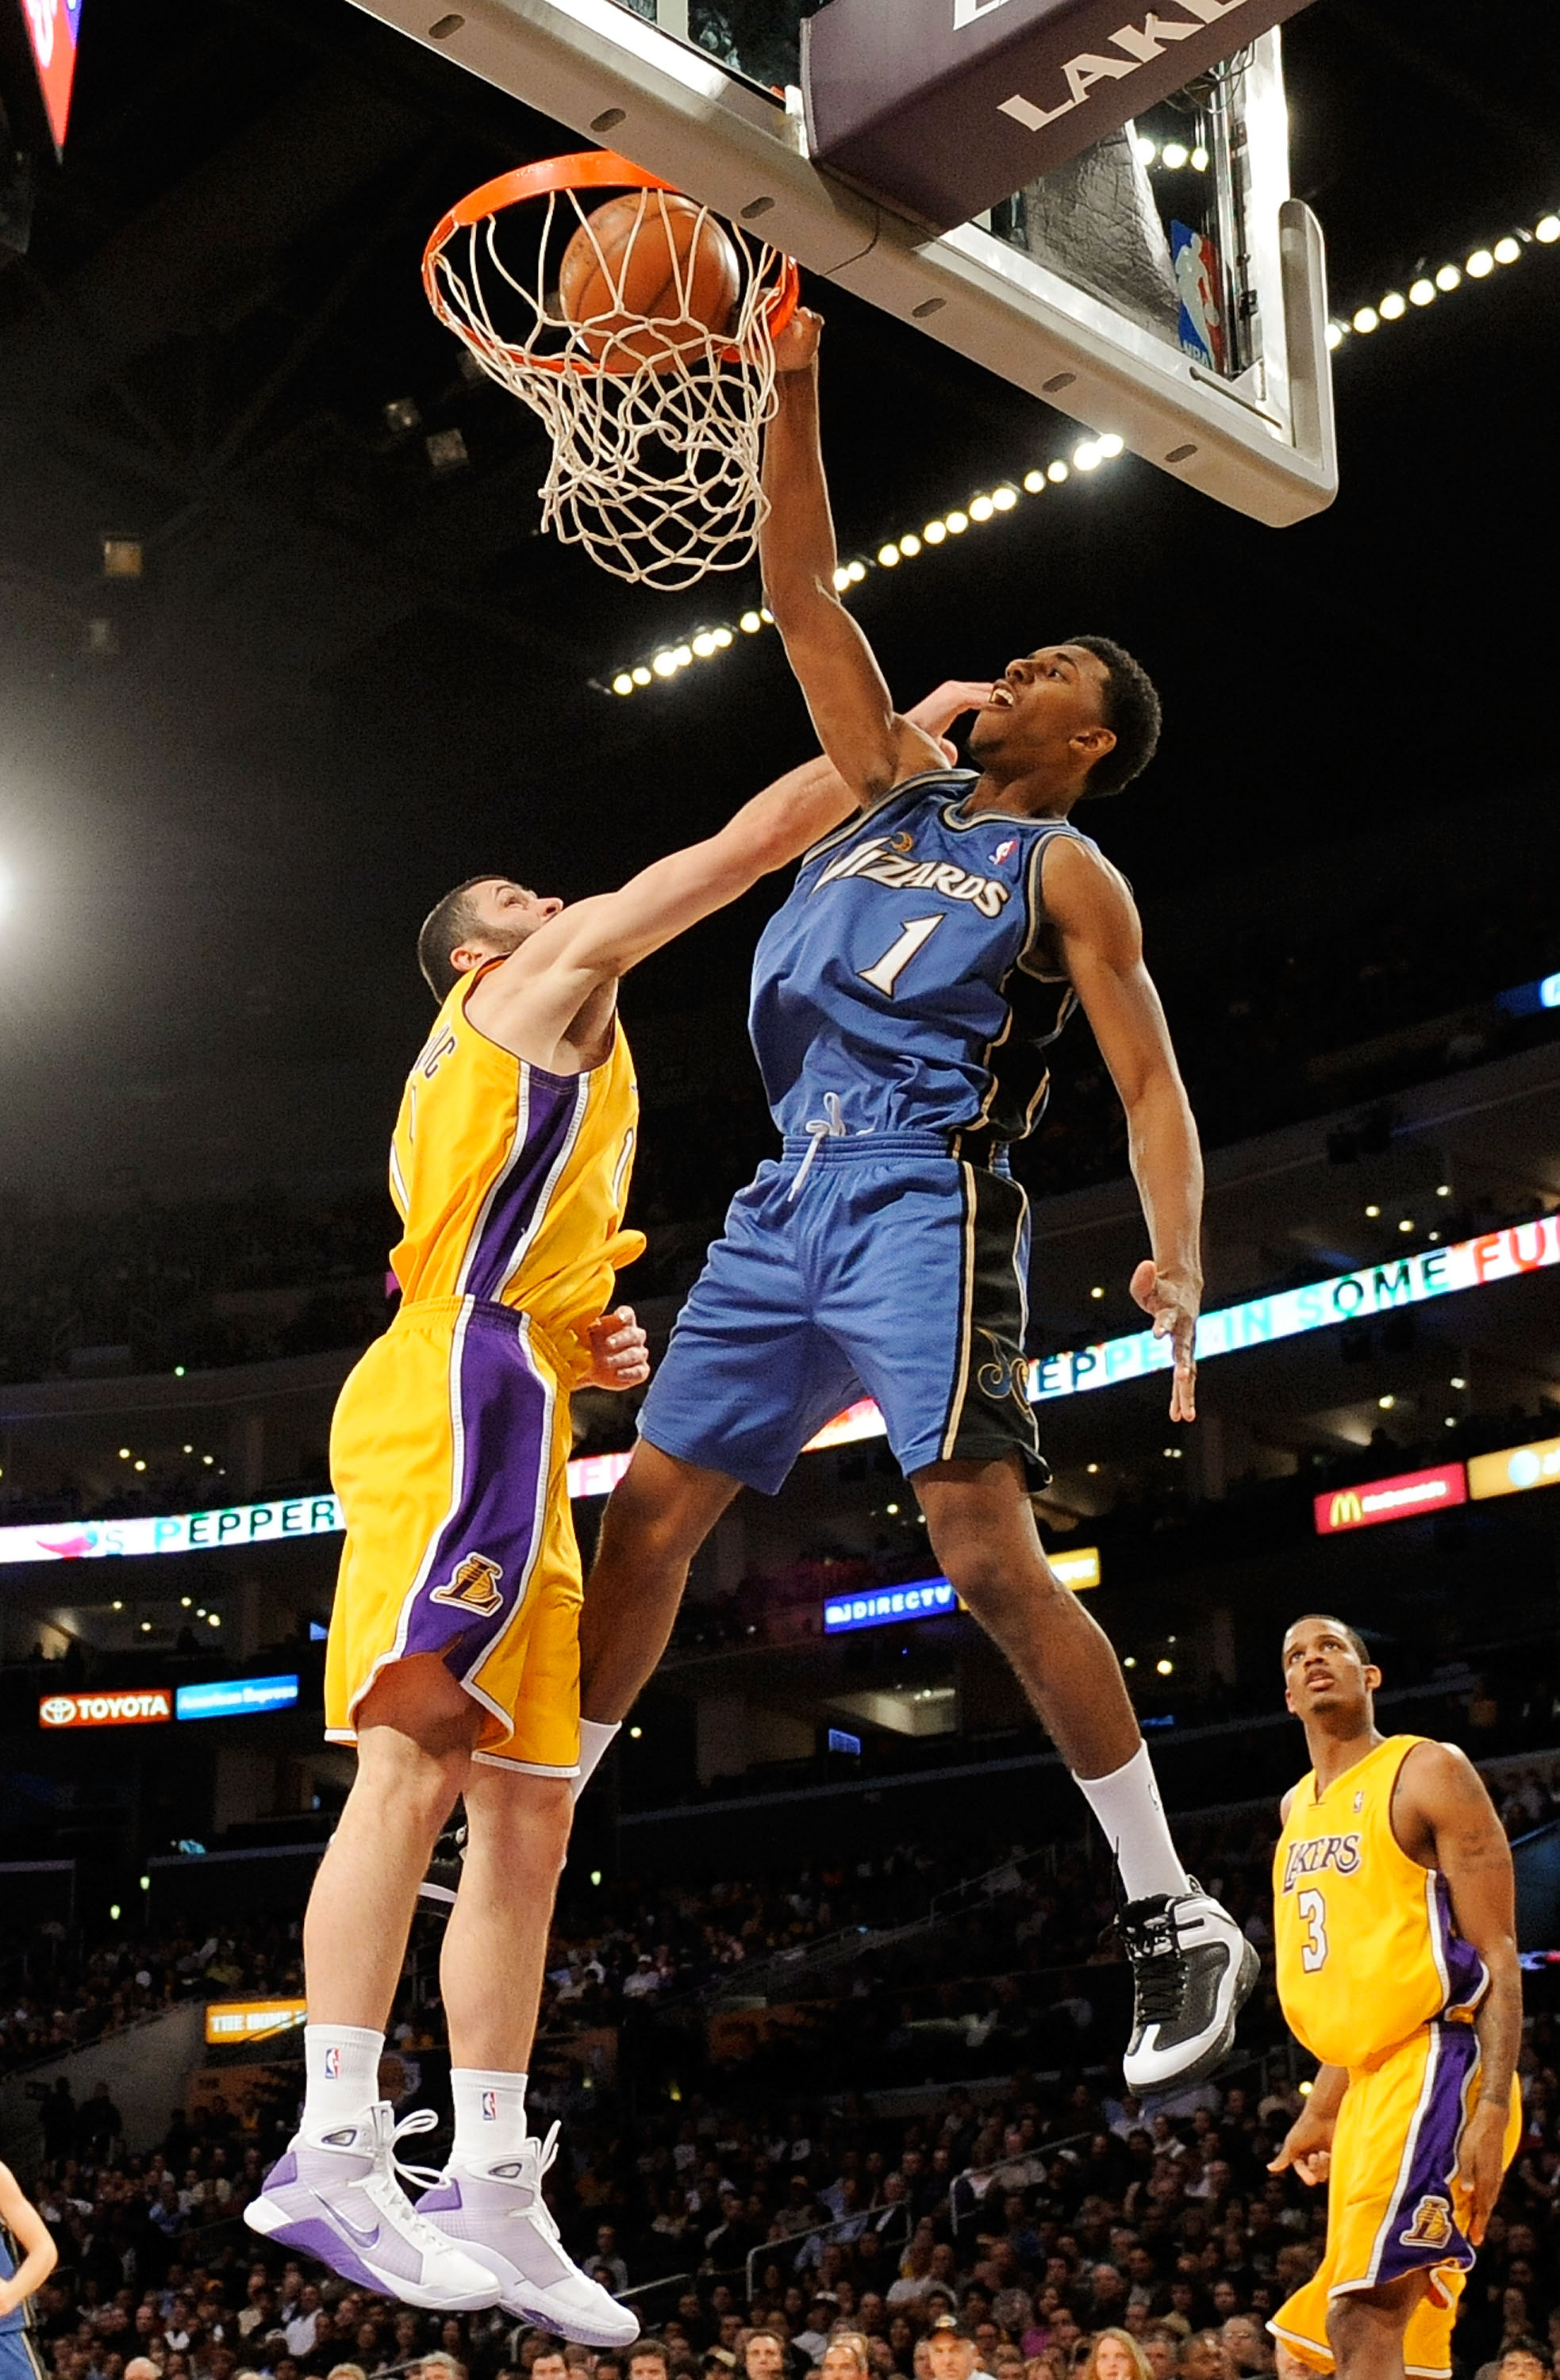 LOS ANGELES, CA - JANUARY 22:  Nick Young #1 of the Washington Wizards dunks against Vladimir Radmanovic #10 of the Los Angeles Lakers during the fourth quarter at the Staples Center January 22, 2009 in Los Angeles, California. NOTE TO USER: User expressl